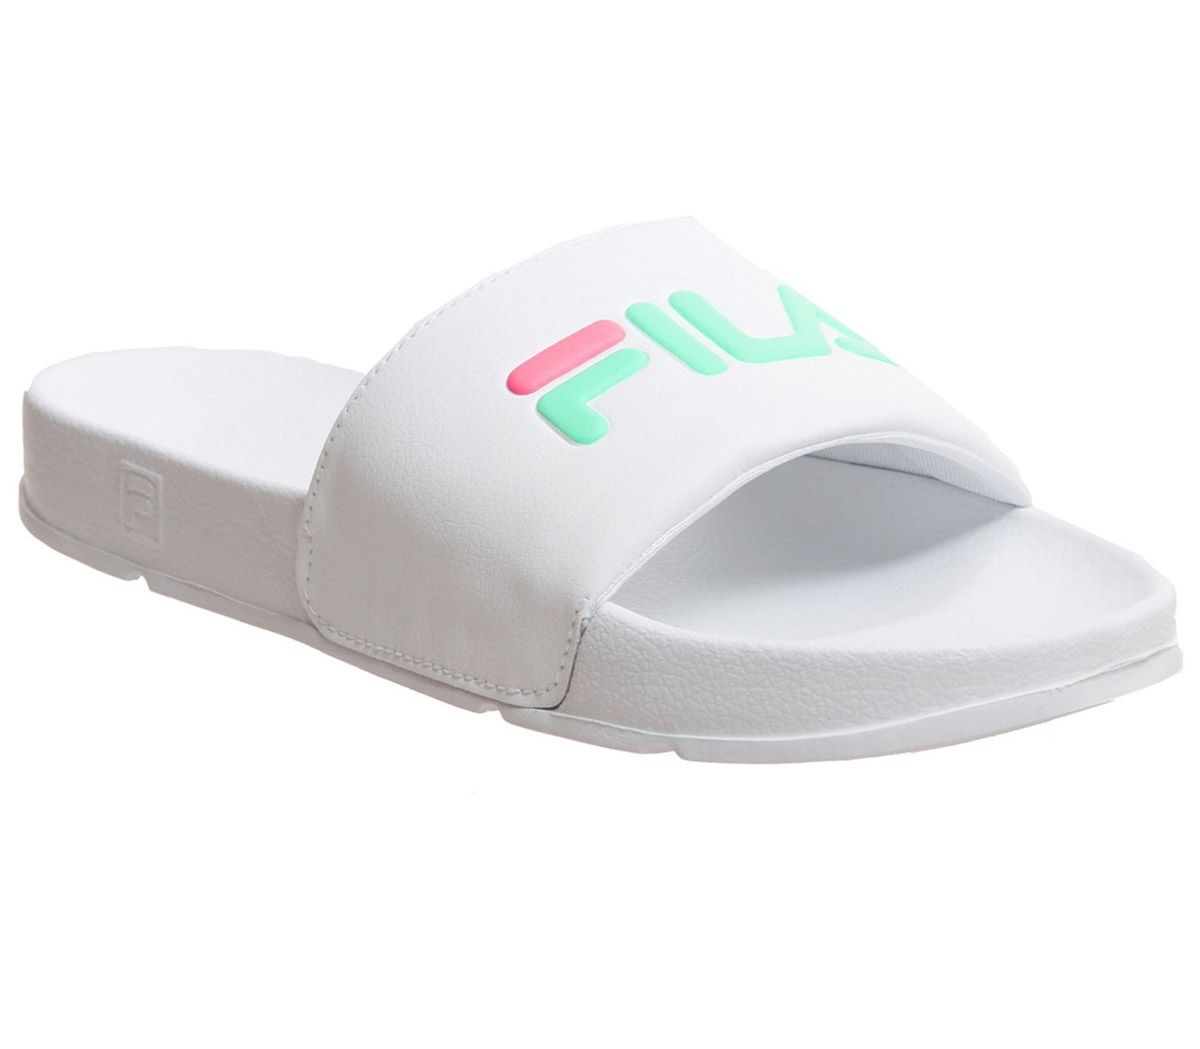 7cf0ad0fd298 Fila Drifter Slide White Cockatoo Desert Flower - Sandals